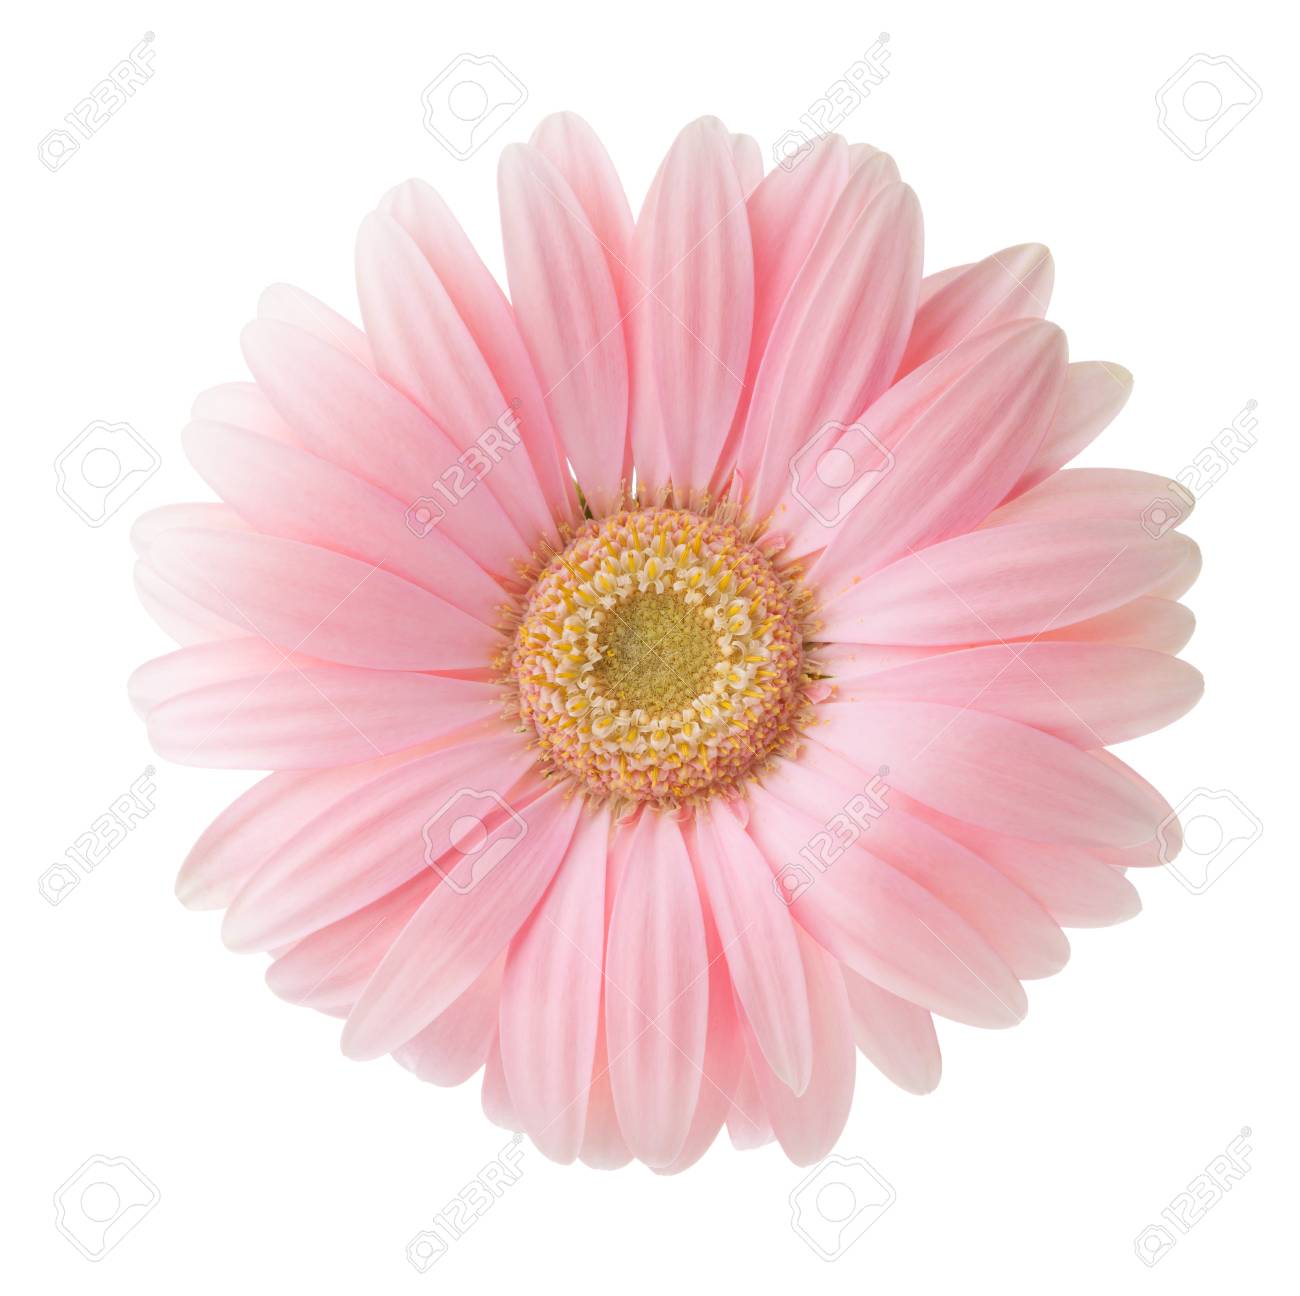 Light Pink Gerbera Flower Isolated On White Background. Stock Photo,  Picture And Royalty Free Image. Image 99443368.